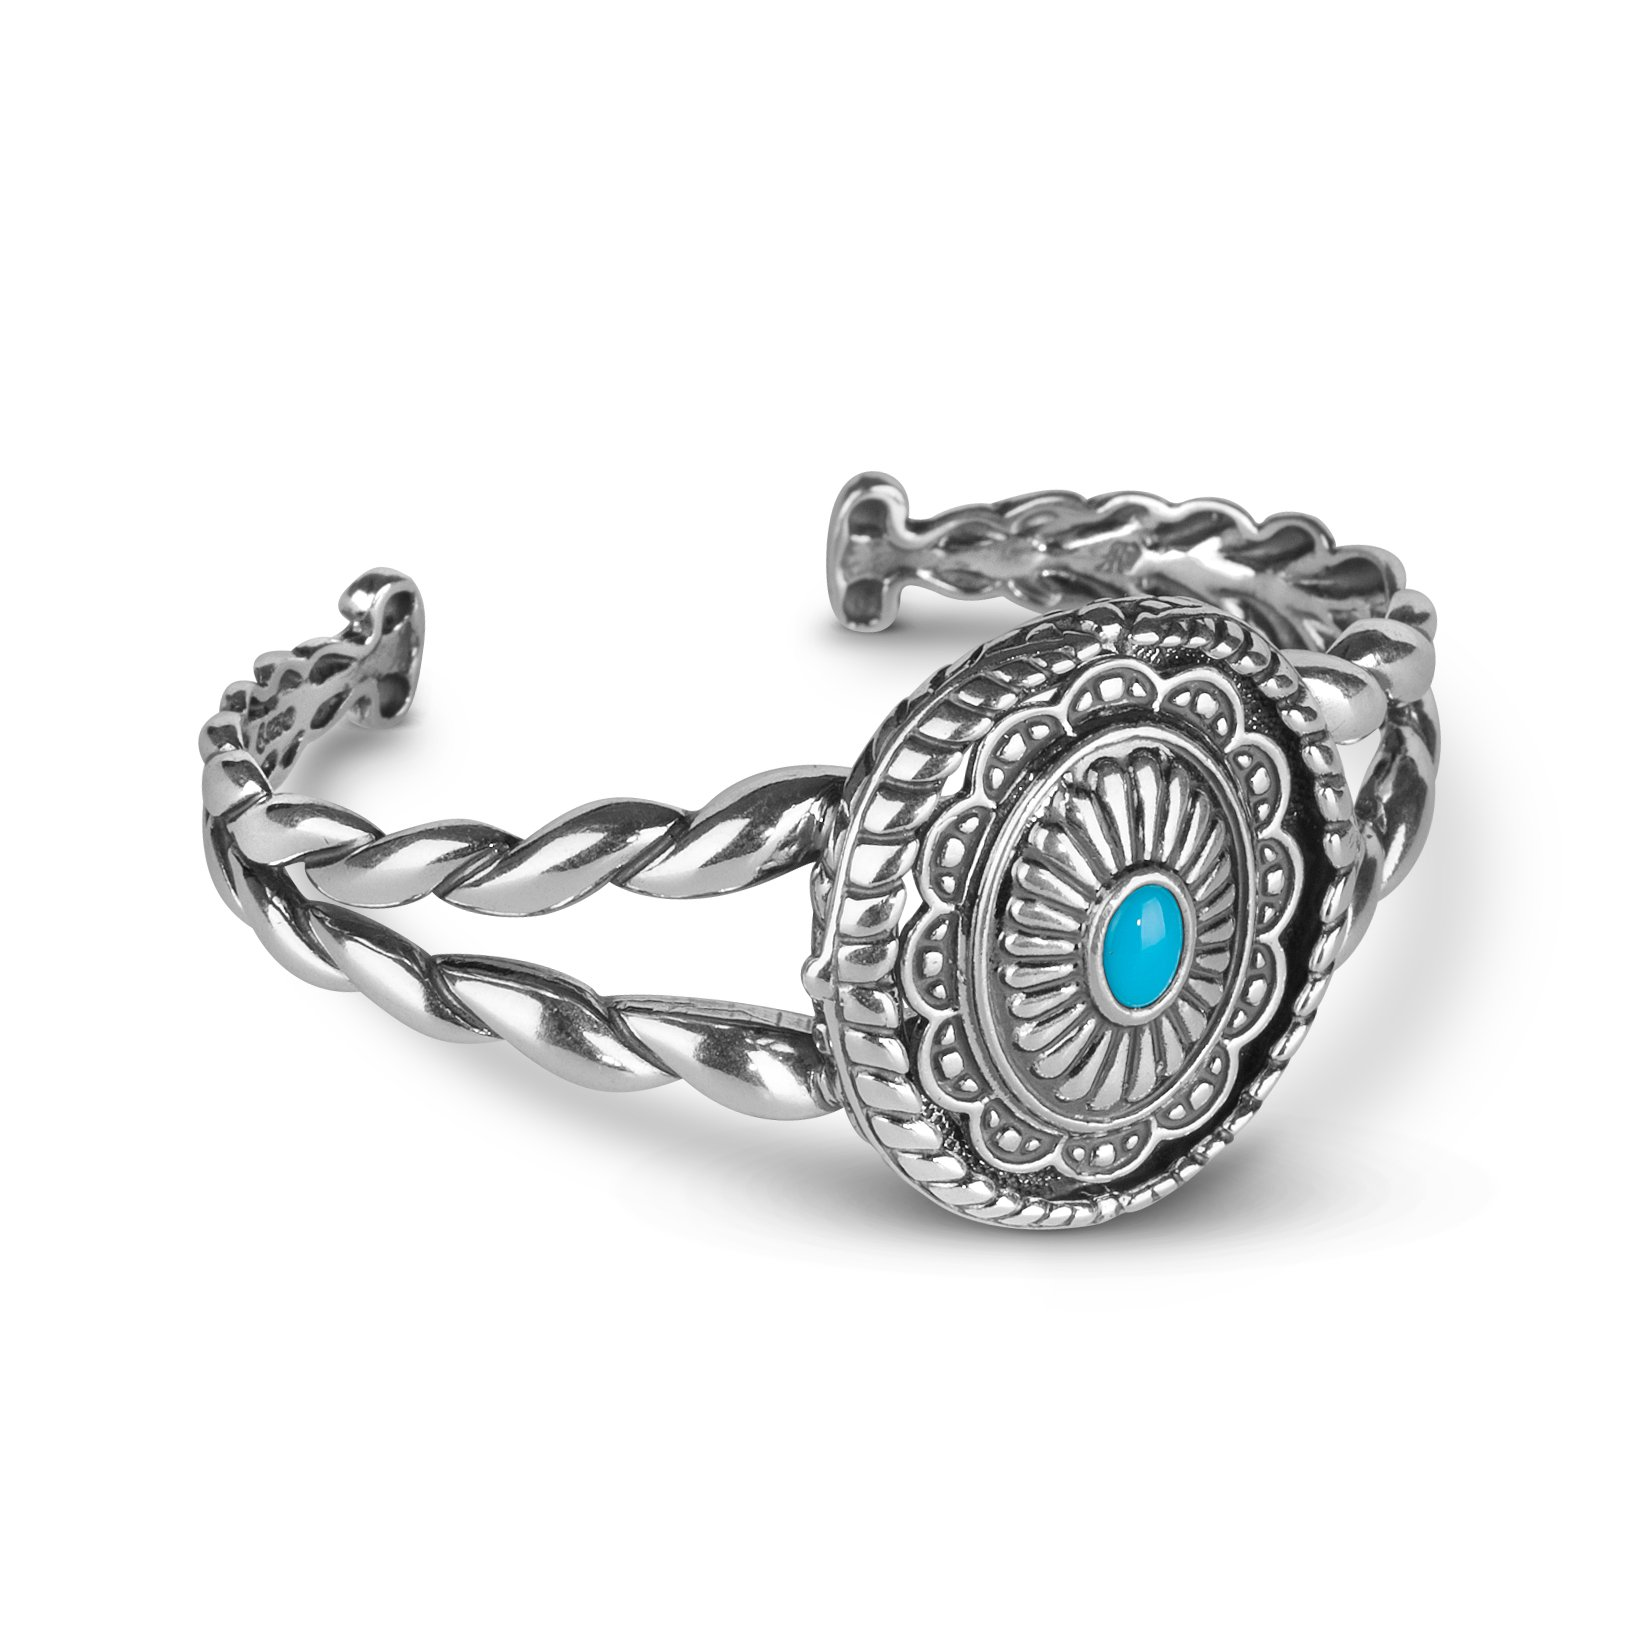 American West Jewelry - Sterling Silver and Sleeping Beauty Turquoise Interchangeable Cuff Bracelet - Large- Treasures Collection